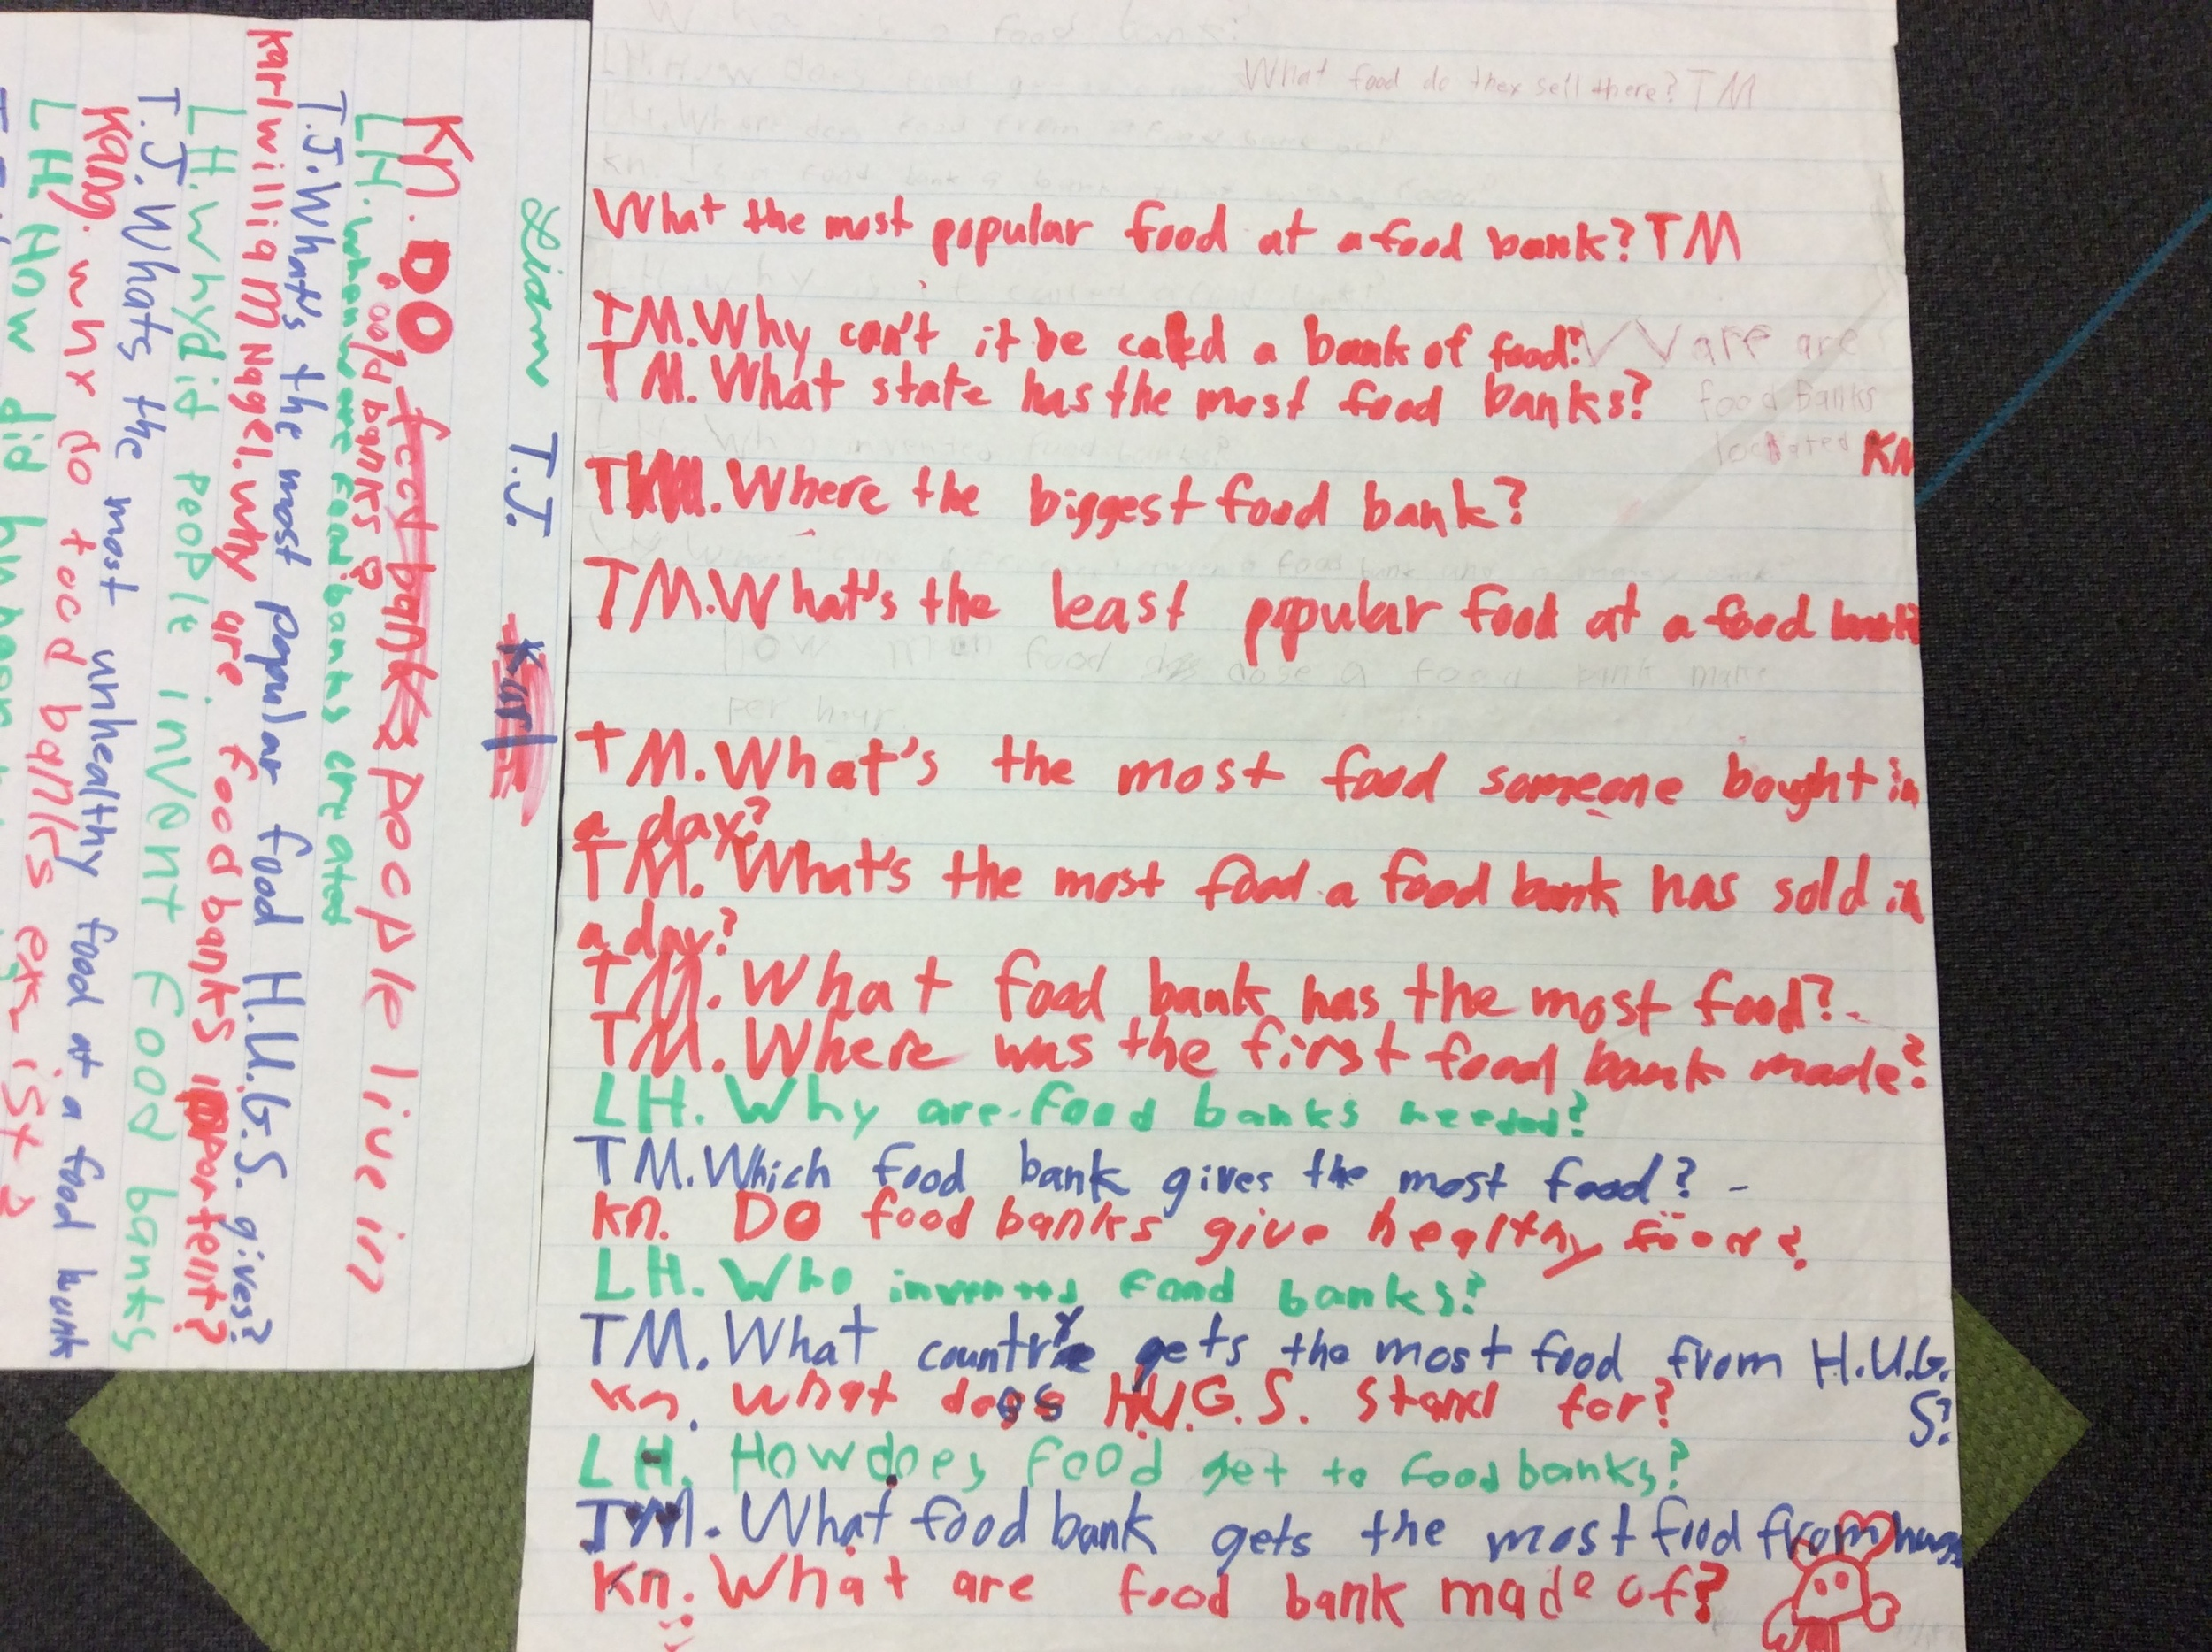 Questions the students prepared to asked Daneille.